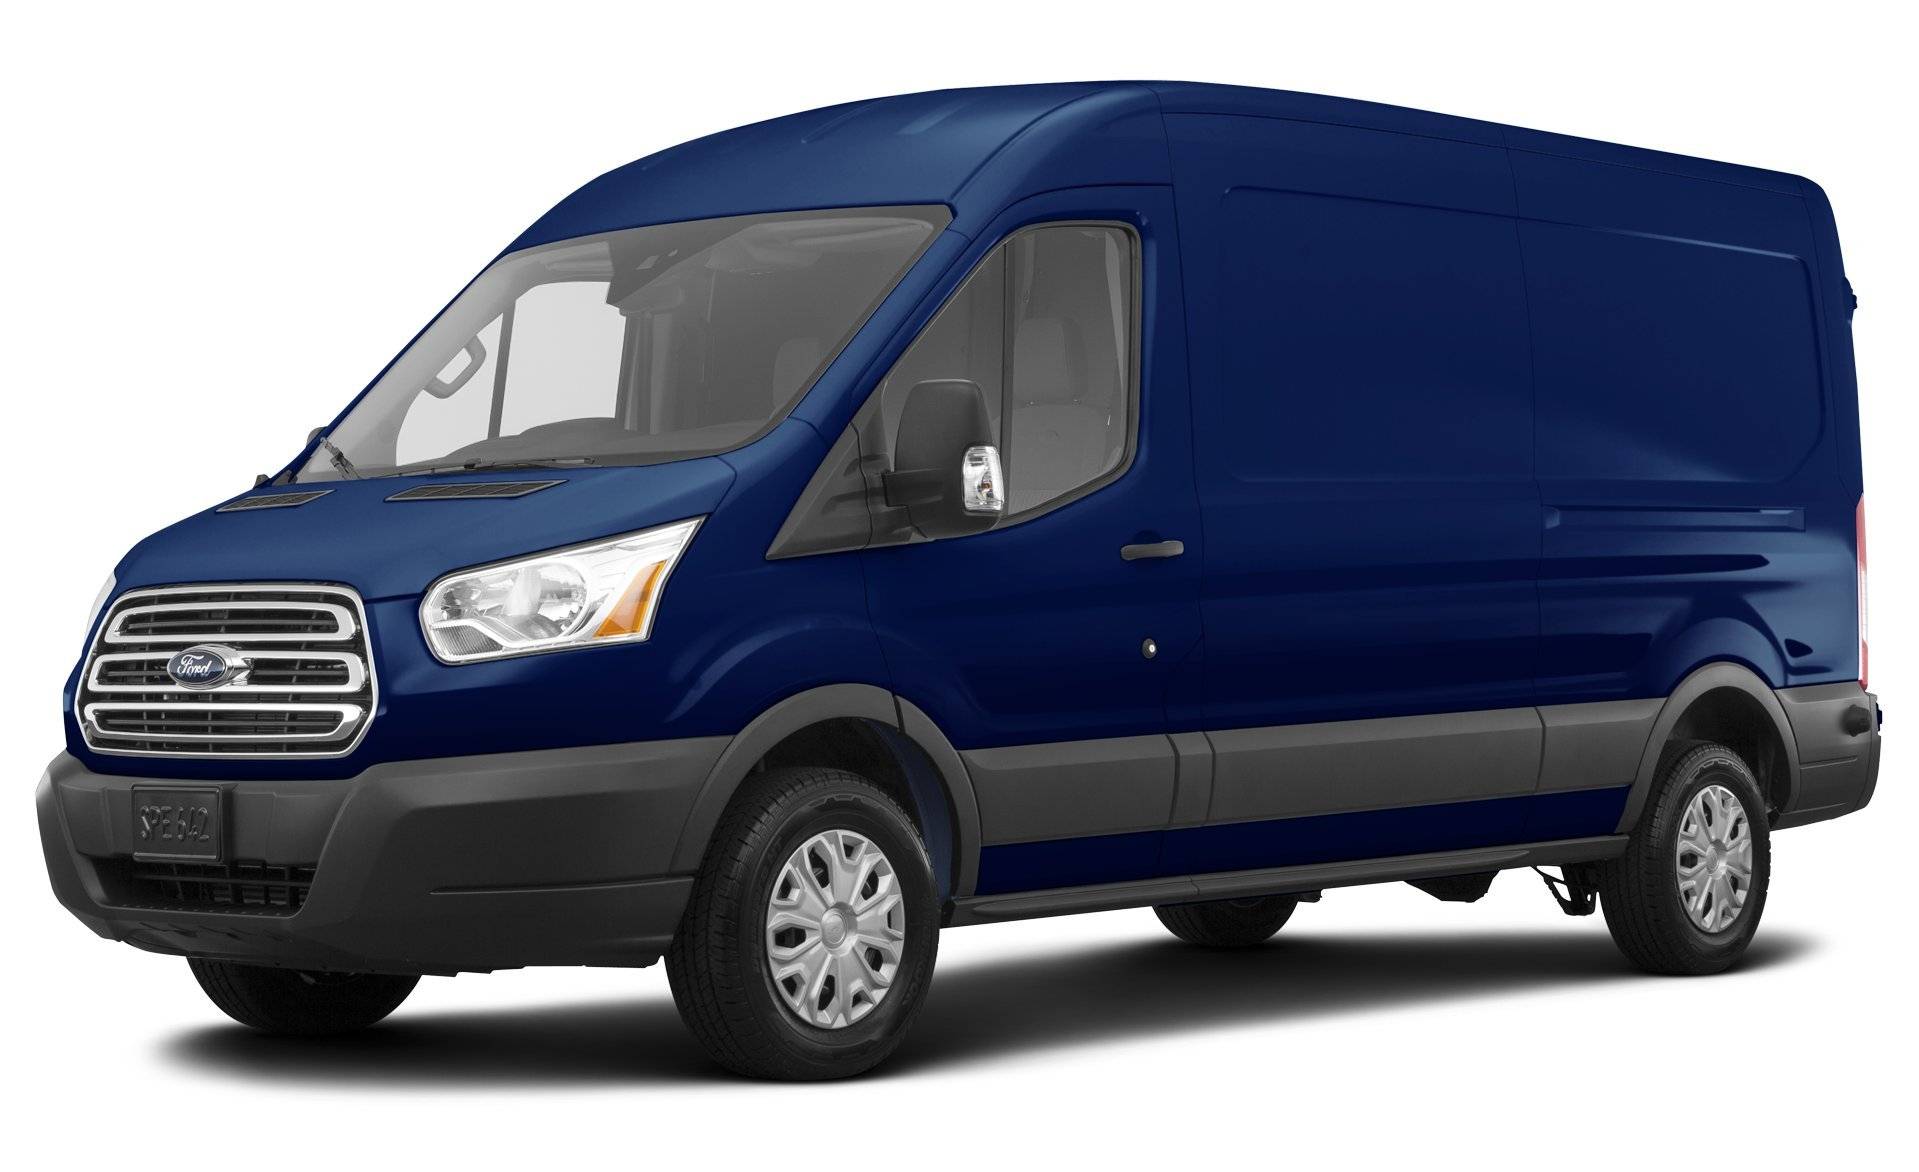 transit ford 350 hd 250 amazon hi gvwr el van cargo wheels rear rf dual dr specs similar vehicles na